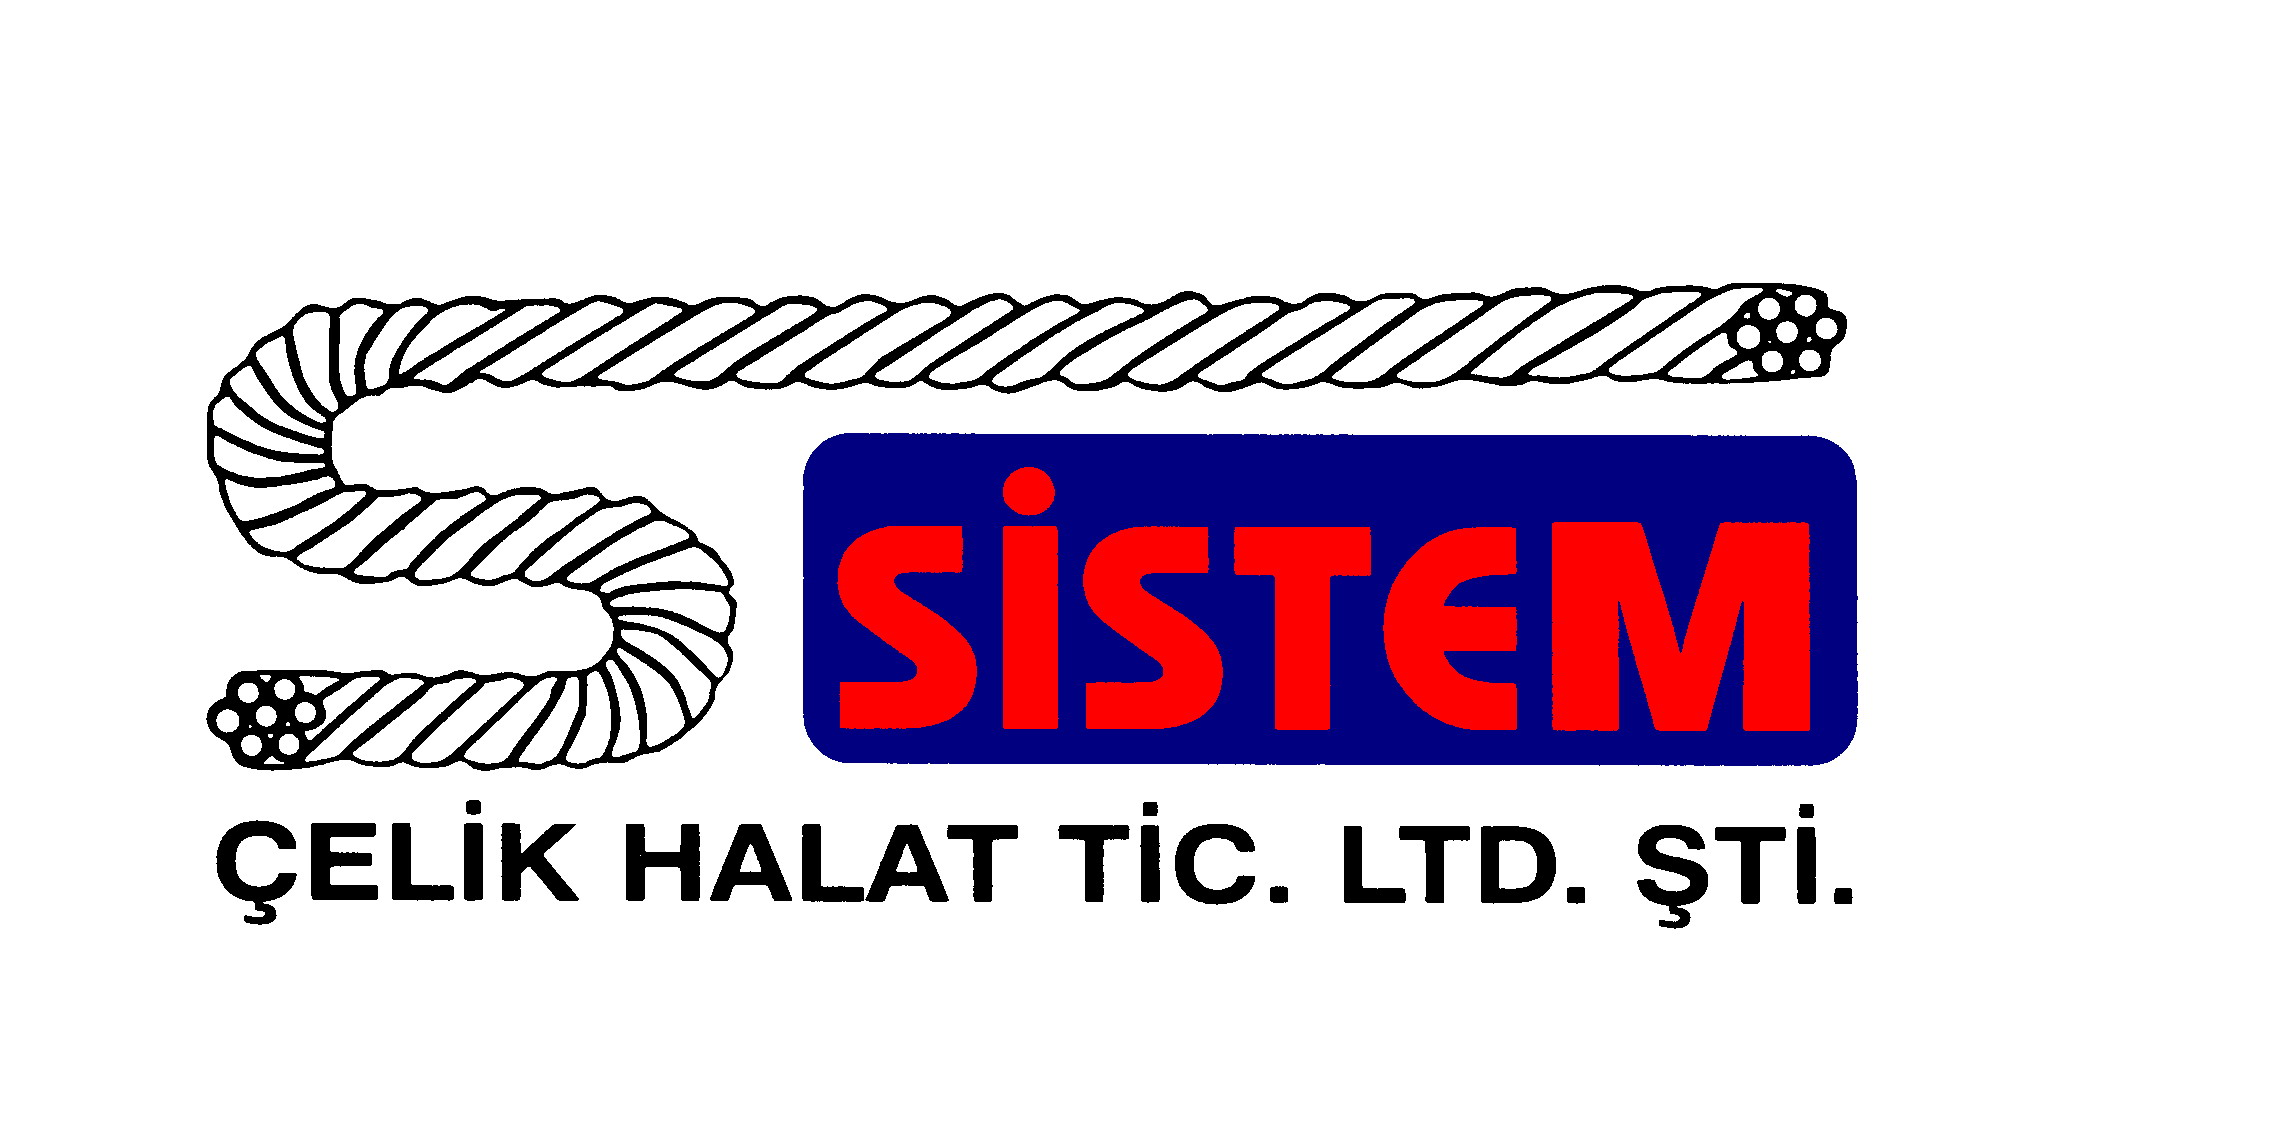 FTC ROPE ATTACHMENTS - Sistem Wire Rope Trade Company Ltd.